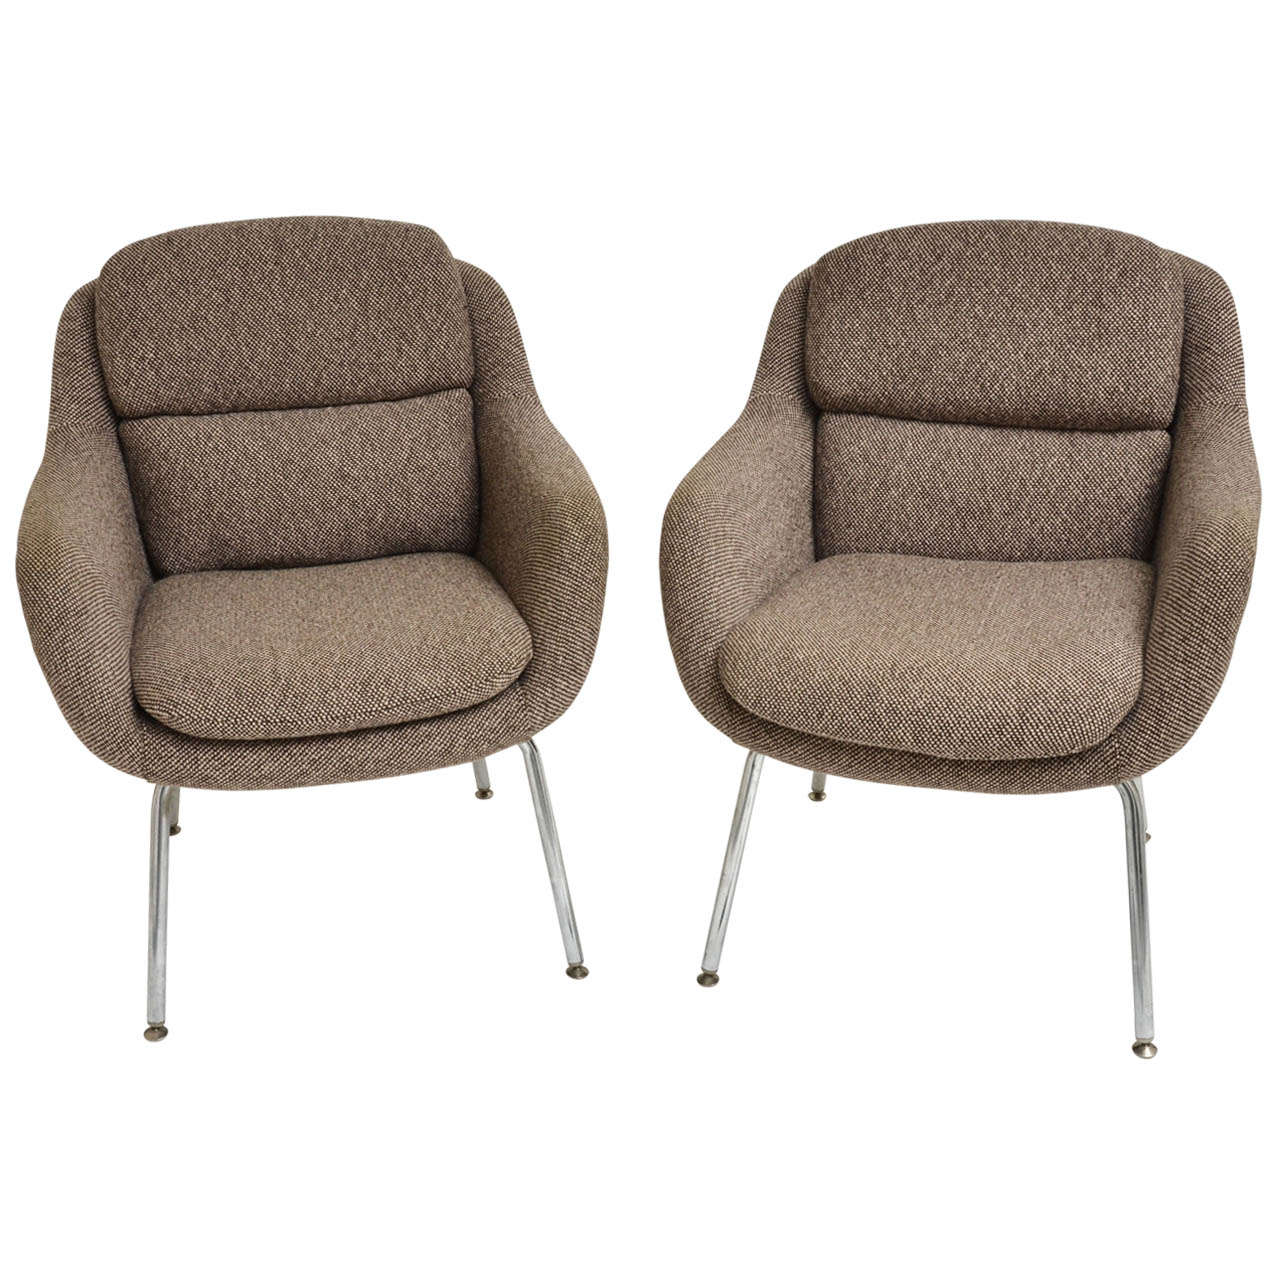 Mid-Century Modern Pair of Upholstered Armchairs